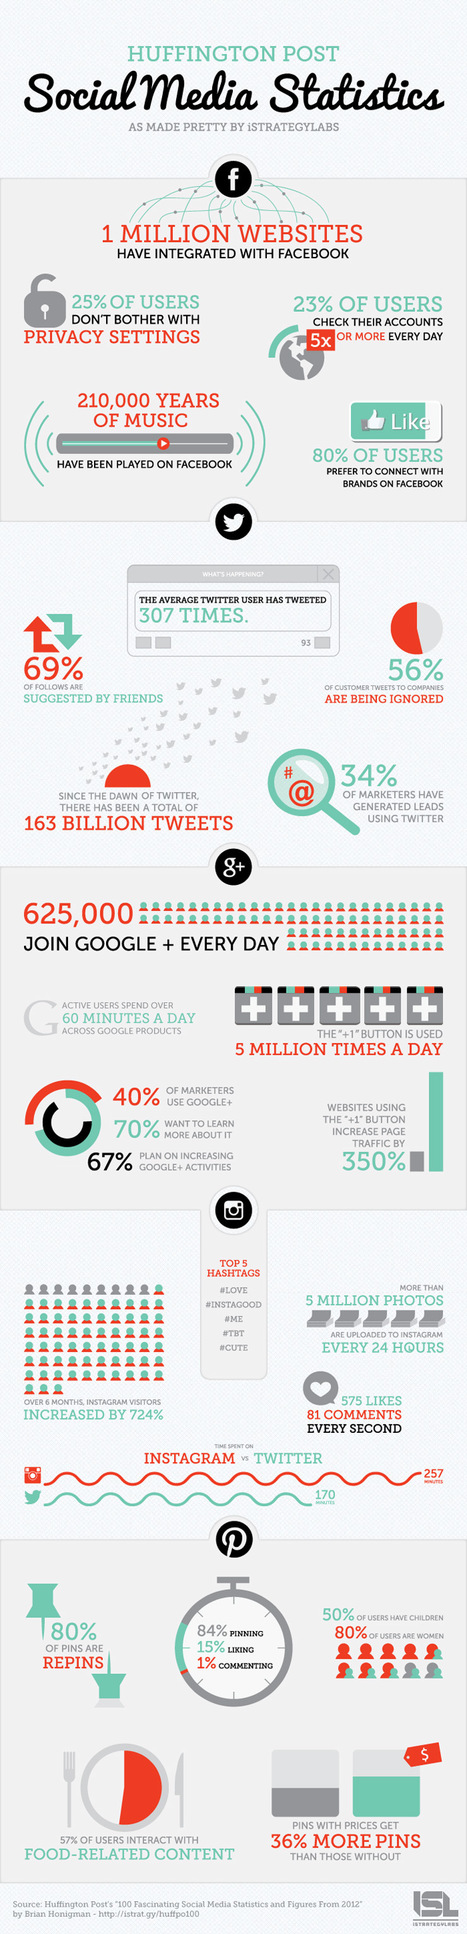 Social Media Statistics: Huffington Post Infographic | Digital Content Marketing | Scoop.it